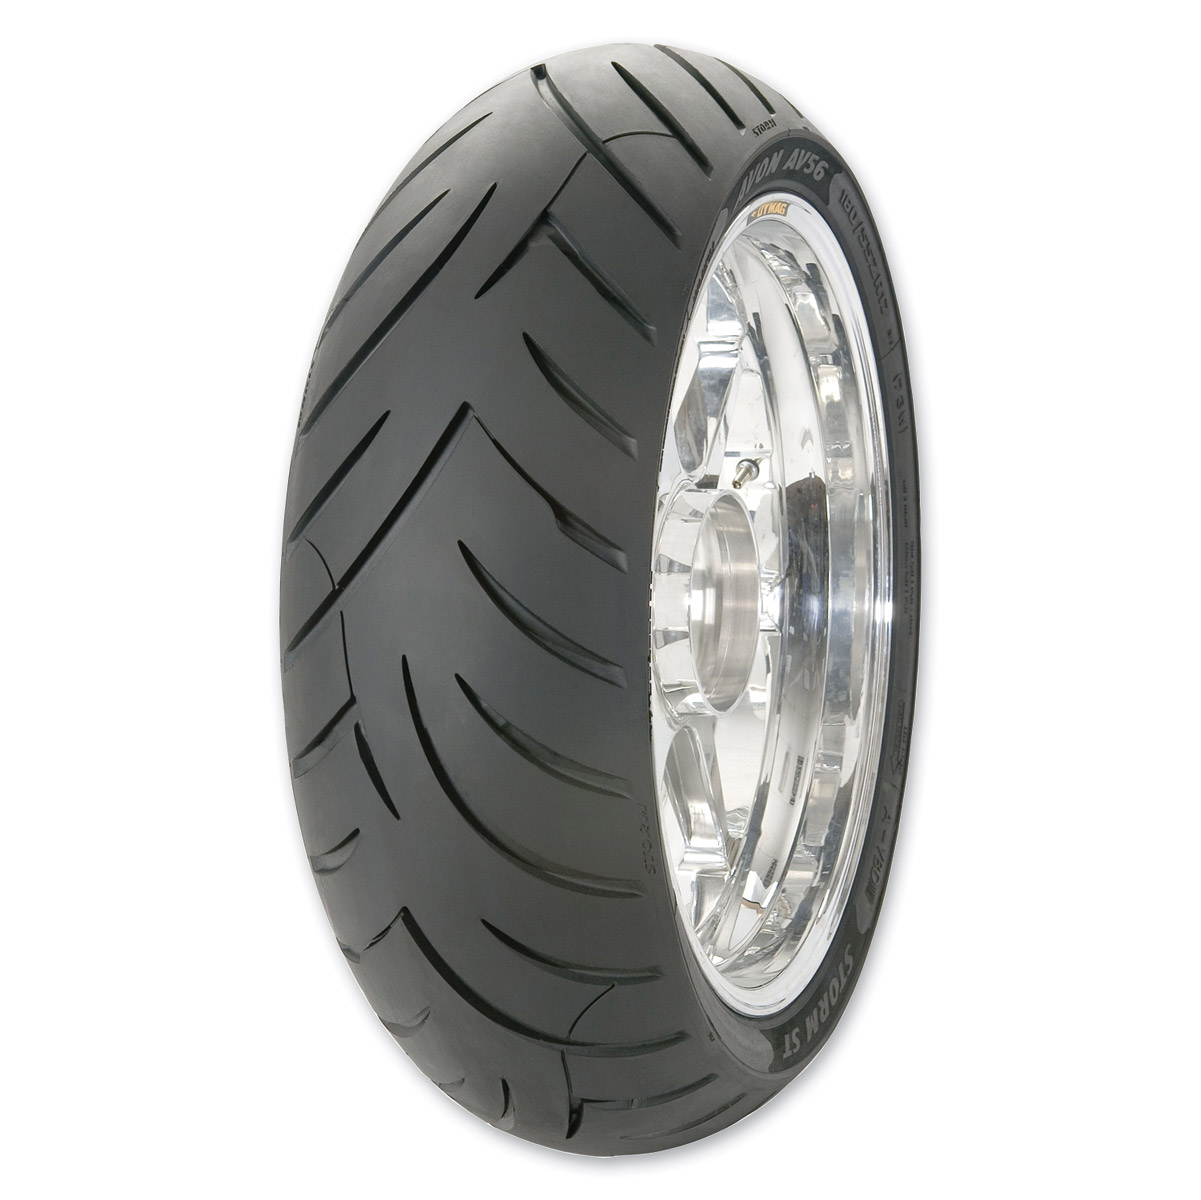 Avon Storm 2 Ultra Sport 180/55R17 Rear Tire